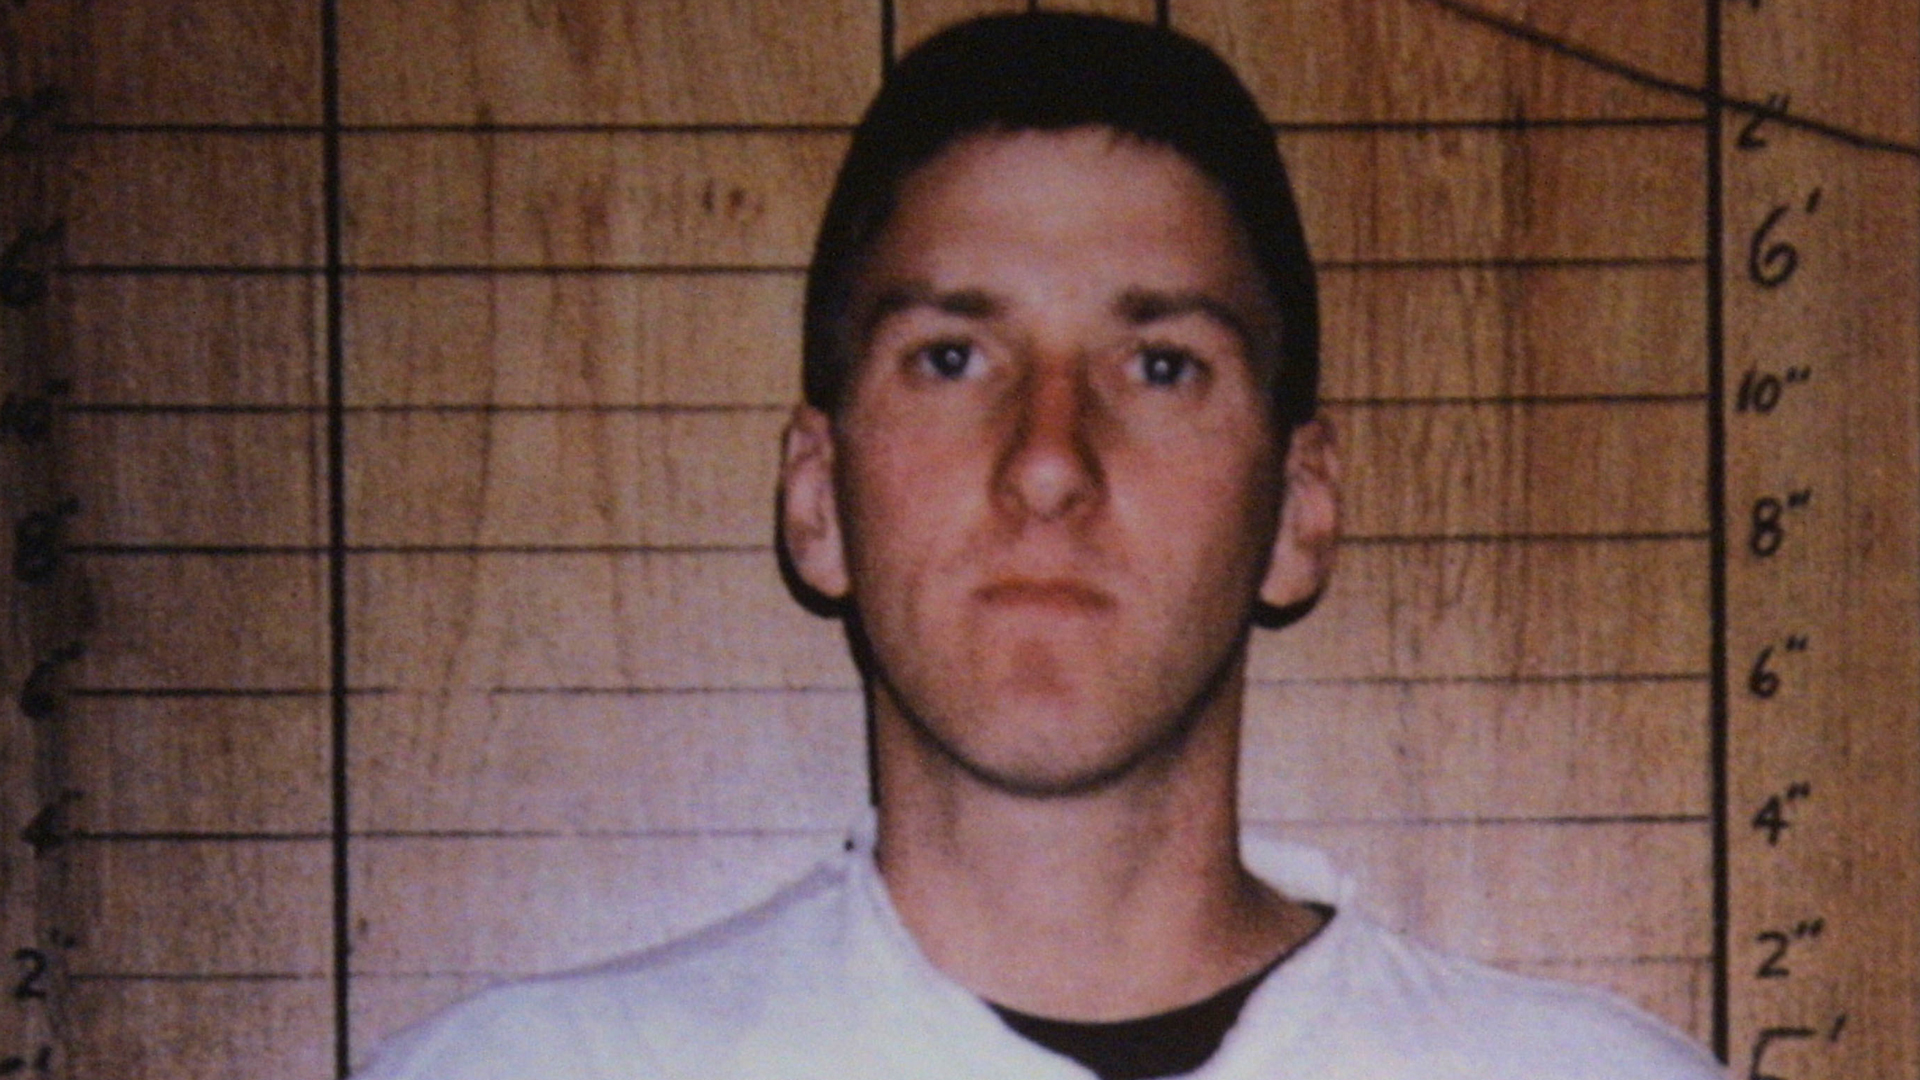 Timothy McVeigh's Death: The Final Days of the Oklahoma City Bomber